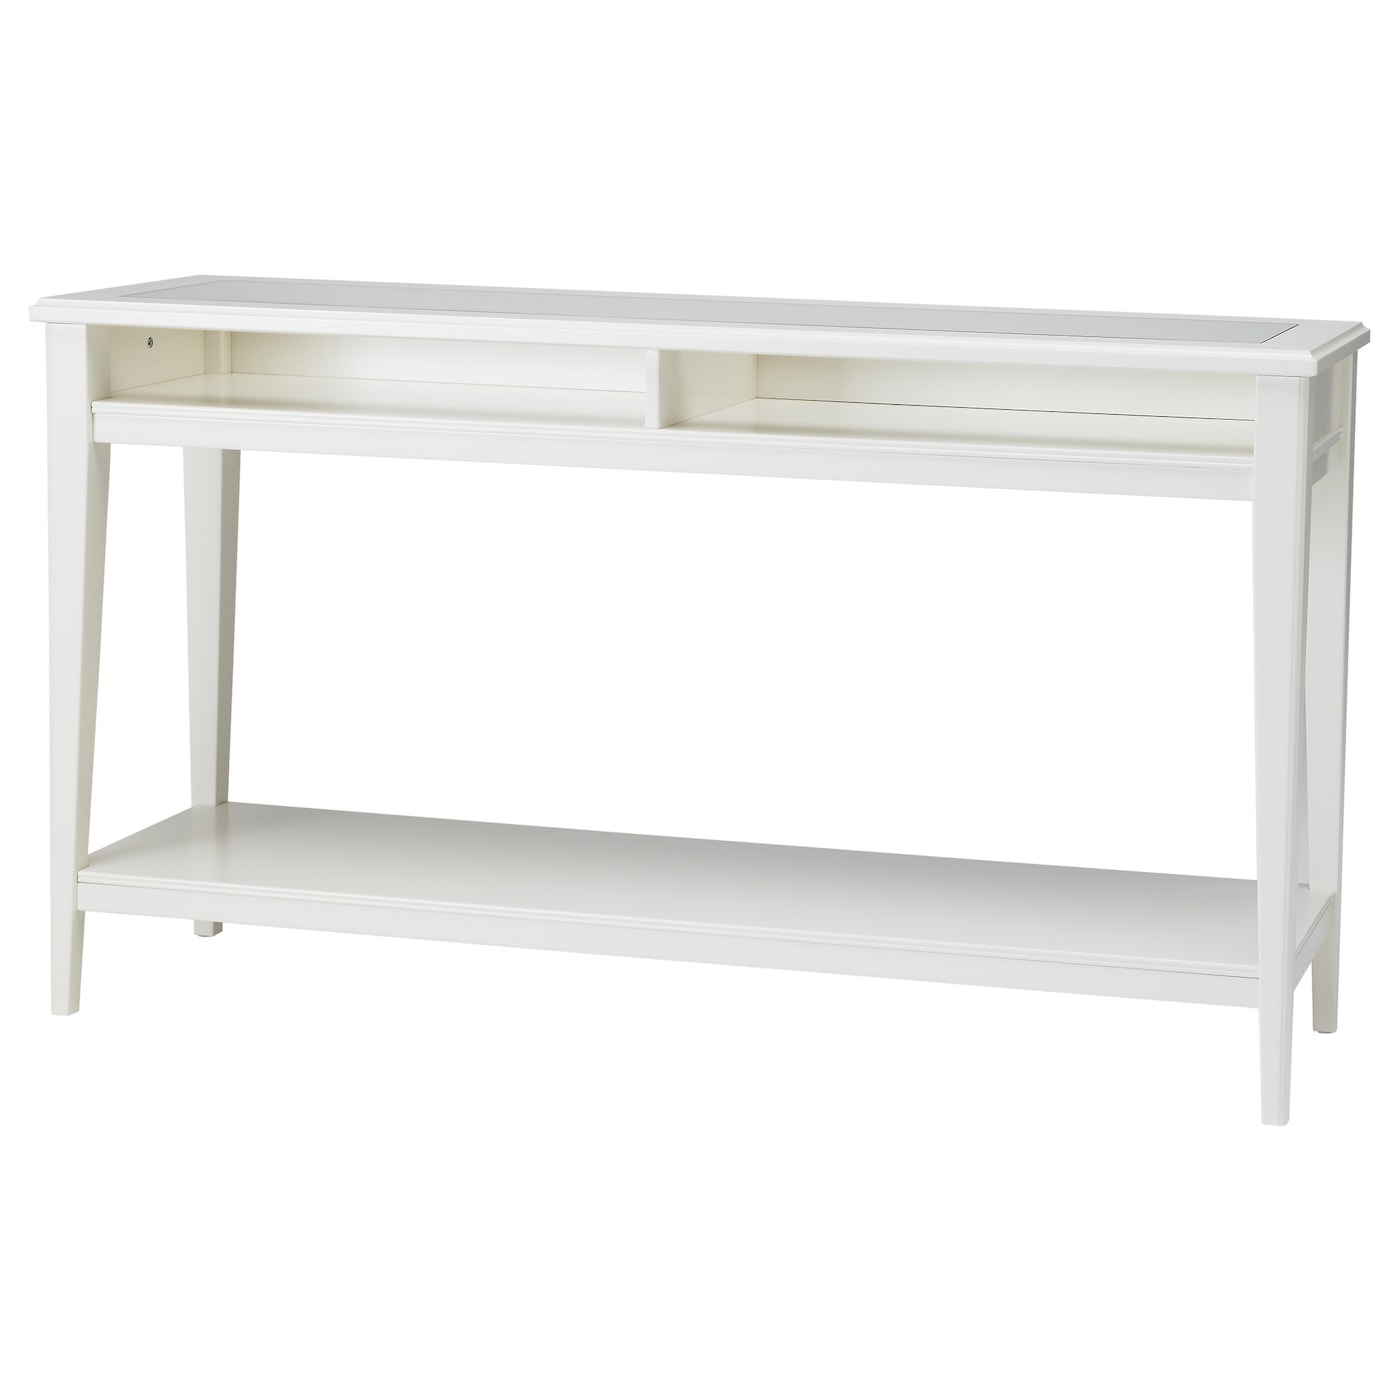 Liatorp console table white glass 133x37 cm ikea for Table et chaise integree